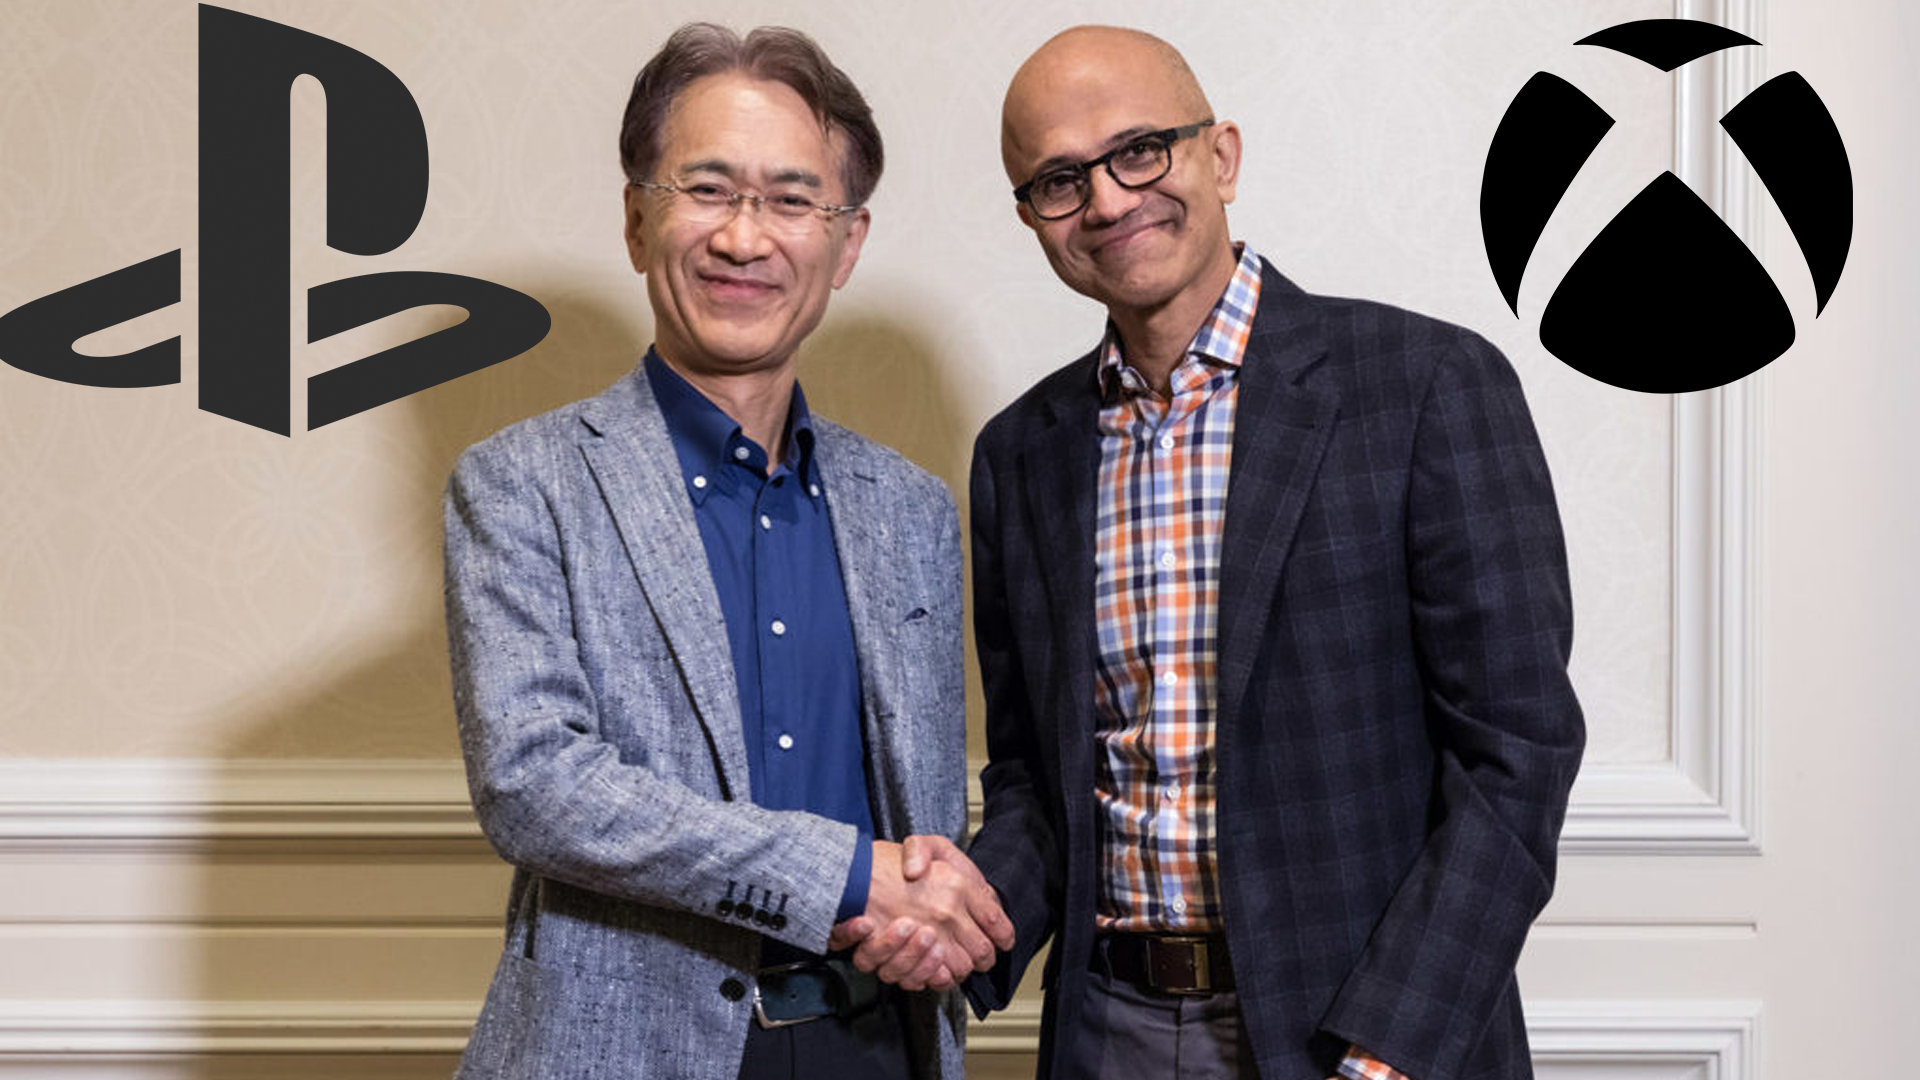 Daily Reaction: What the Sony Microsoft Partnership Means for the Future